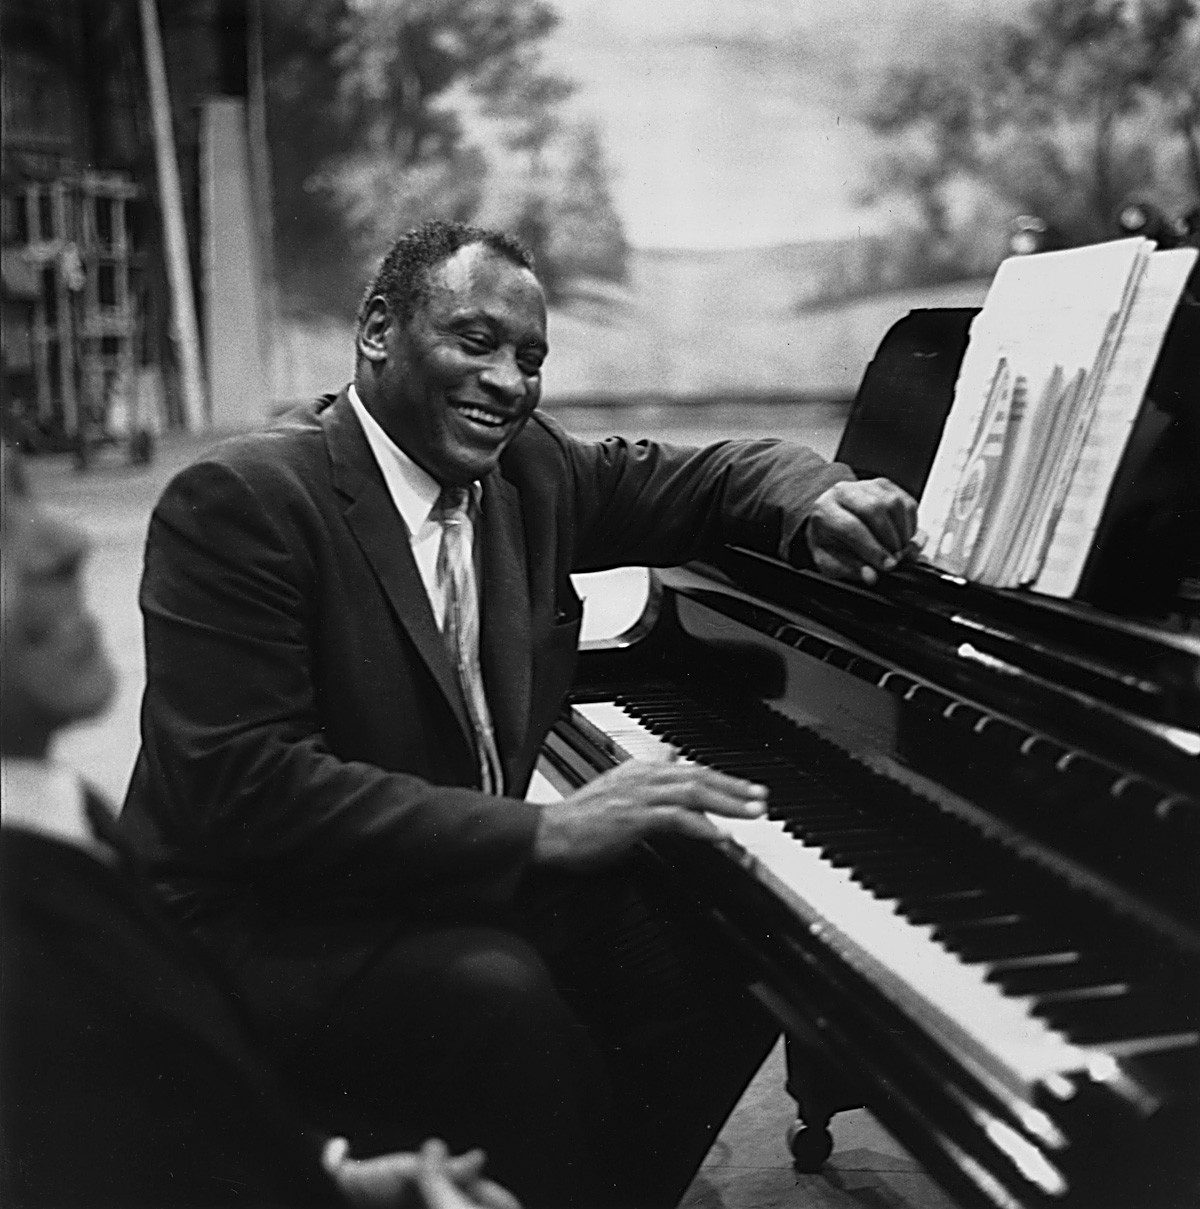 22nd July 1958: American singer, acclaimed actor of stage and screen, political activist and civil rights campaigner Paul Robeson (1898 - 1976), rehearses in relaxed mood at the piano